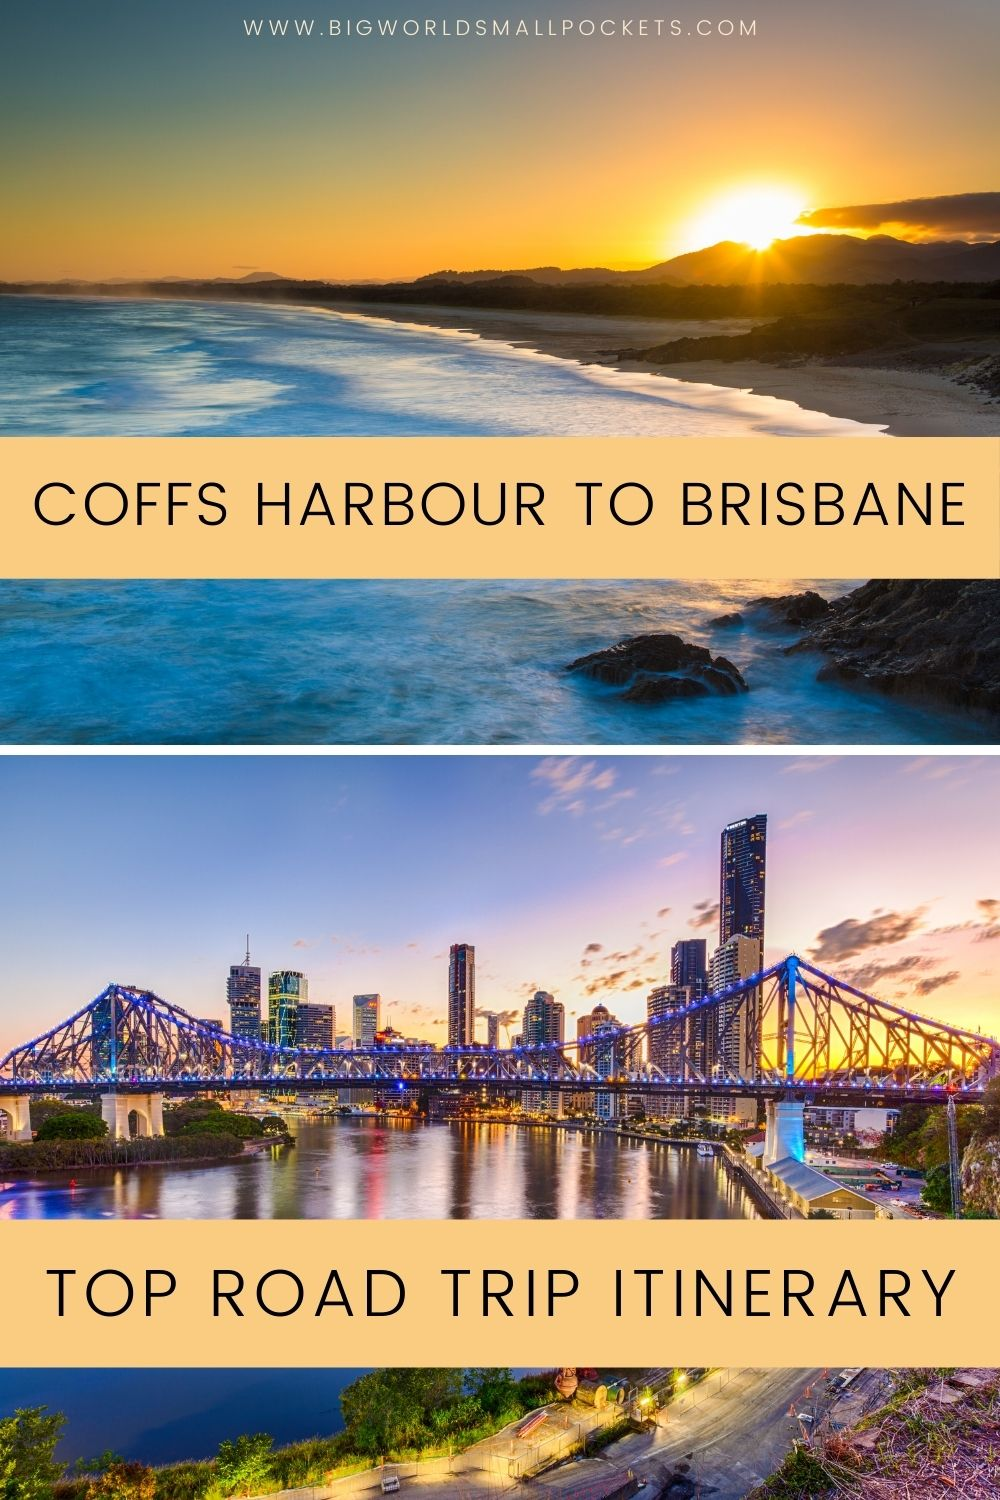 Perfect Road Trip from Coffs Harbour to Brisbane